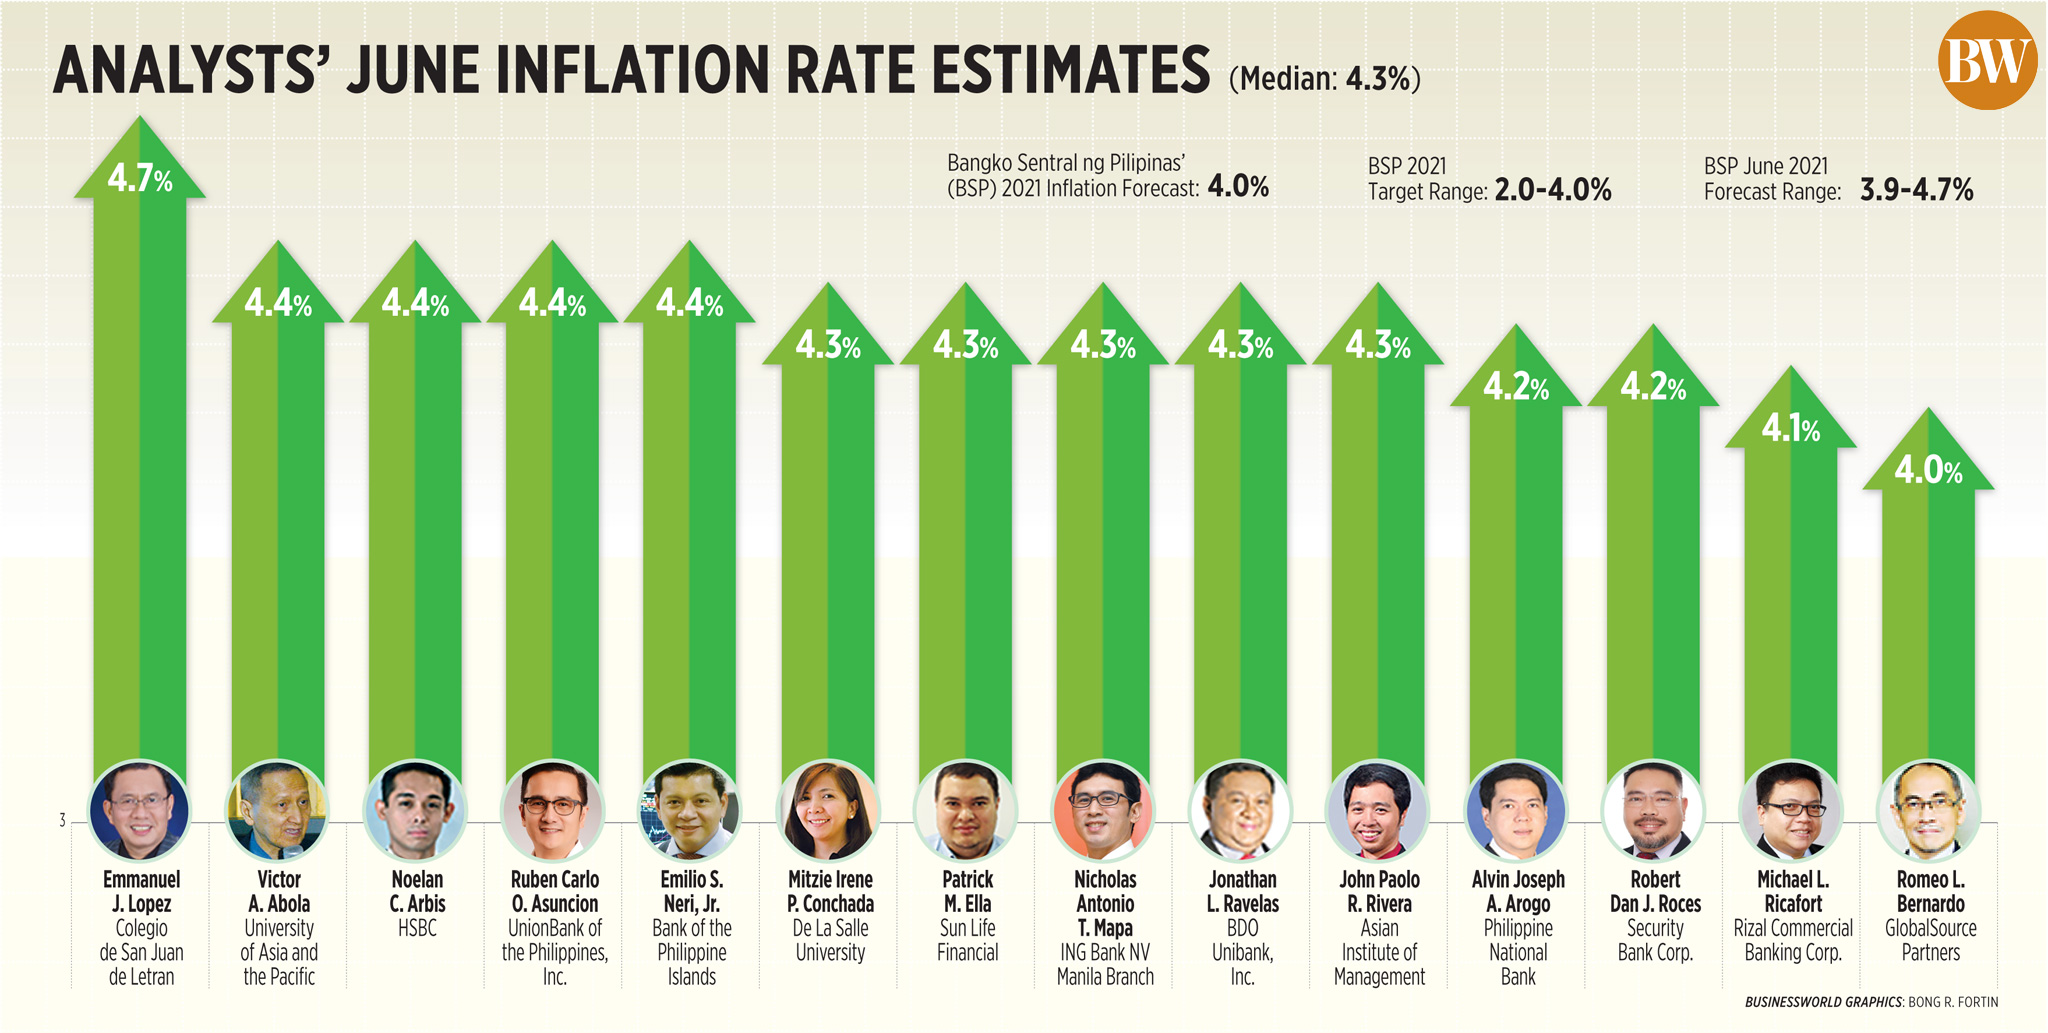 Analysts' June inflation rate estimates (2021)